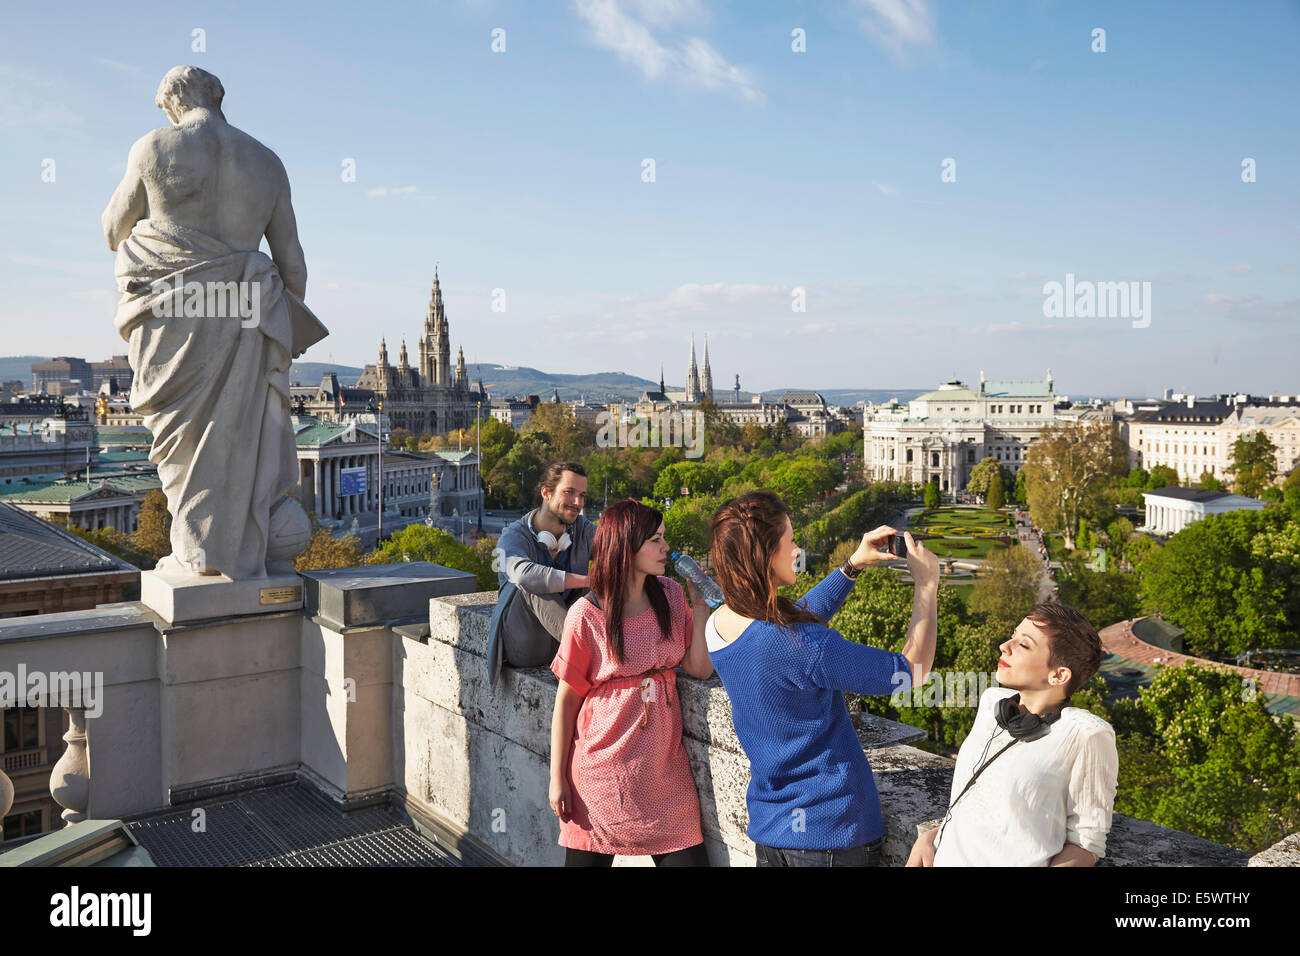 Group of young adult tourists taking pictures, Vienna, Austria - Stock Image